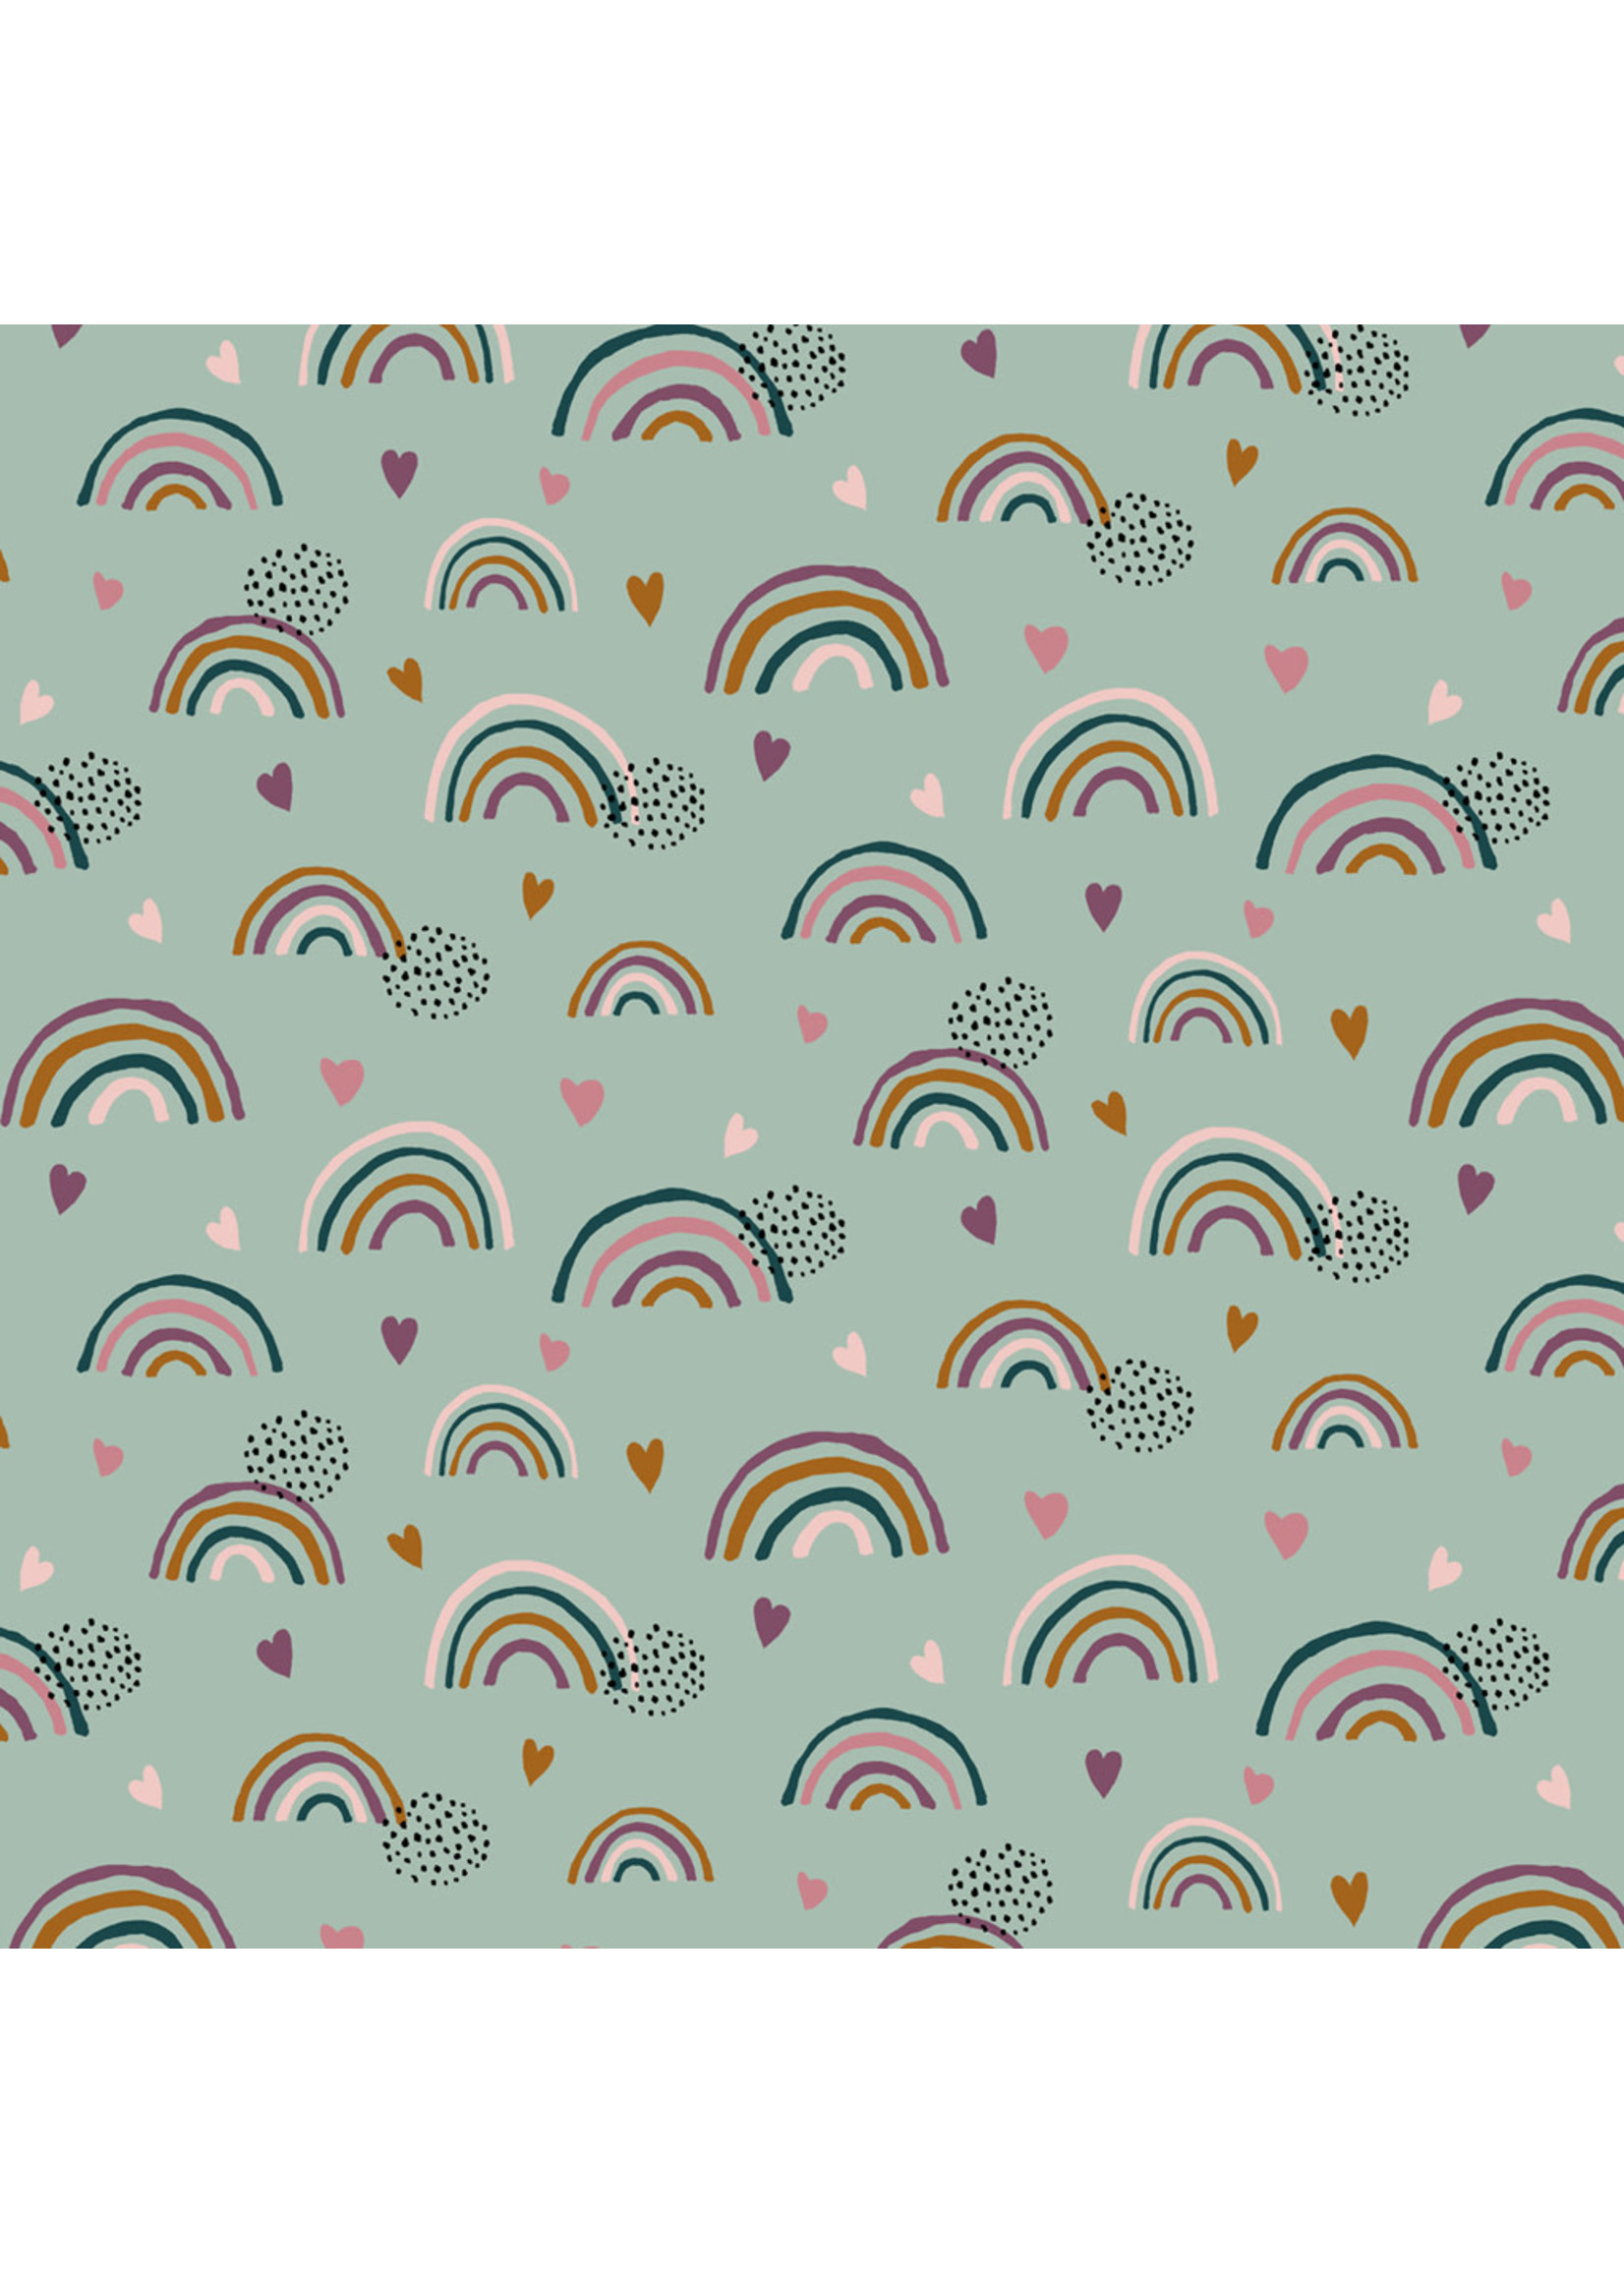 Designed for you by Poppy Rainbow and hearts